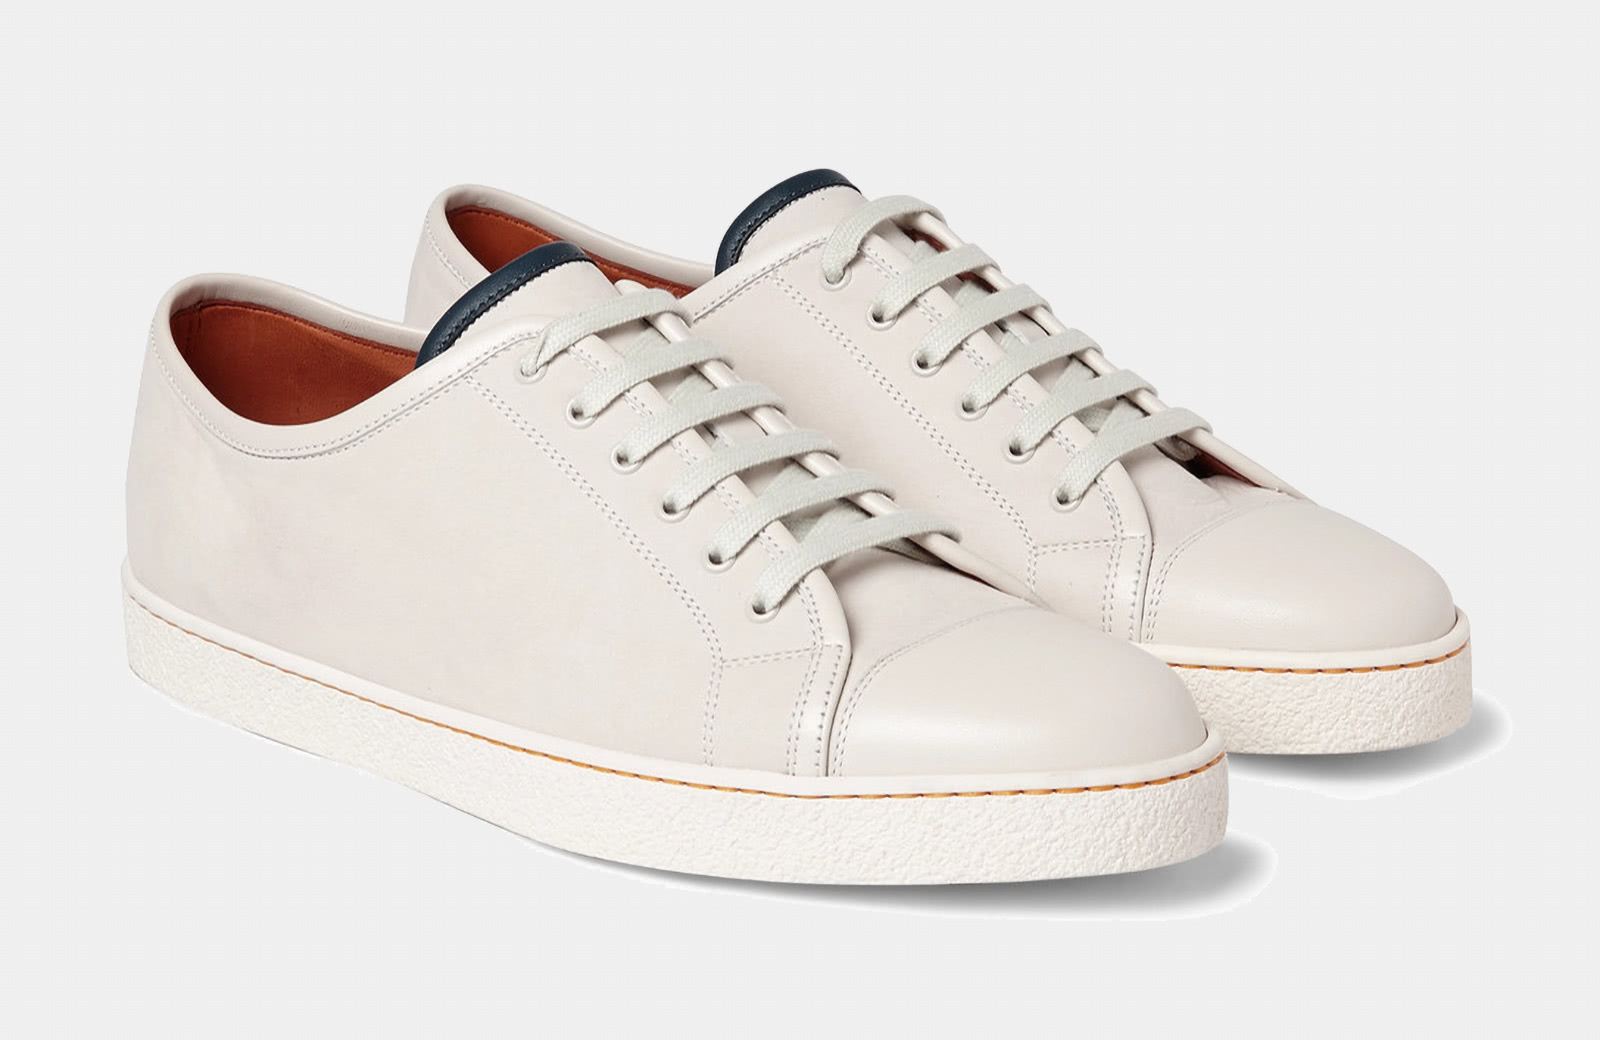 c68340fa3 20 Luxury Sneakers For Men To Master Casual Smart (2019)